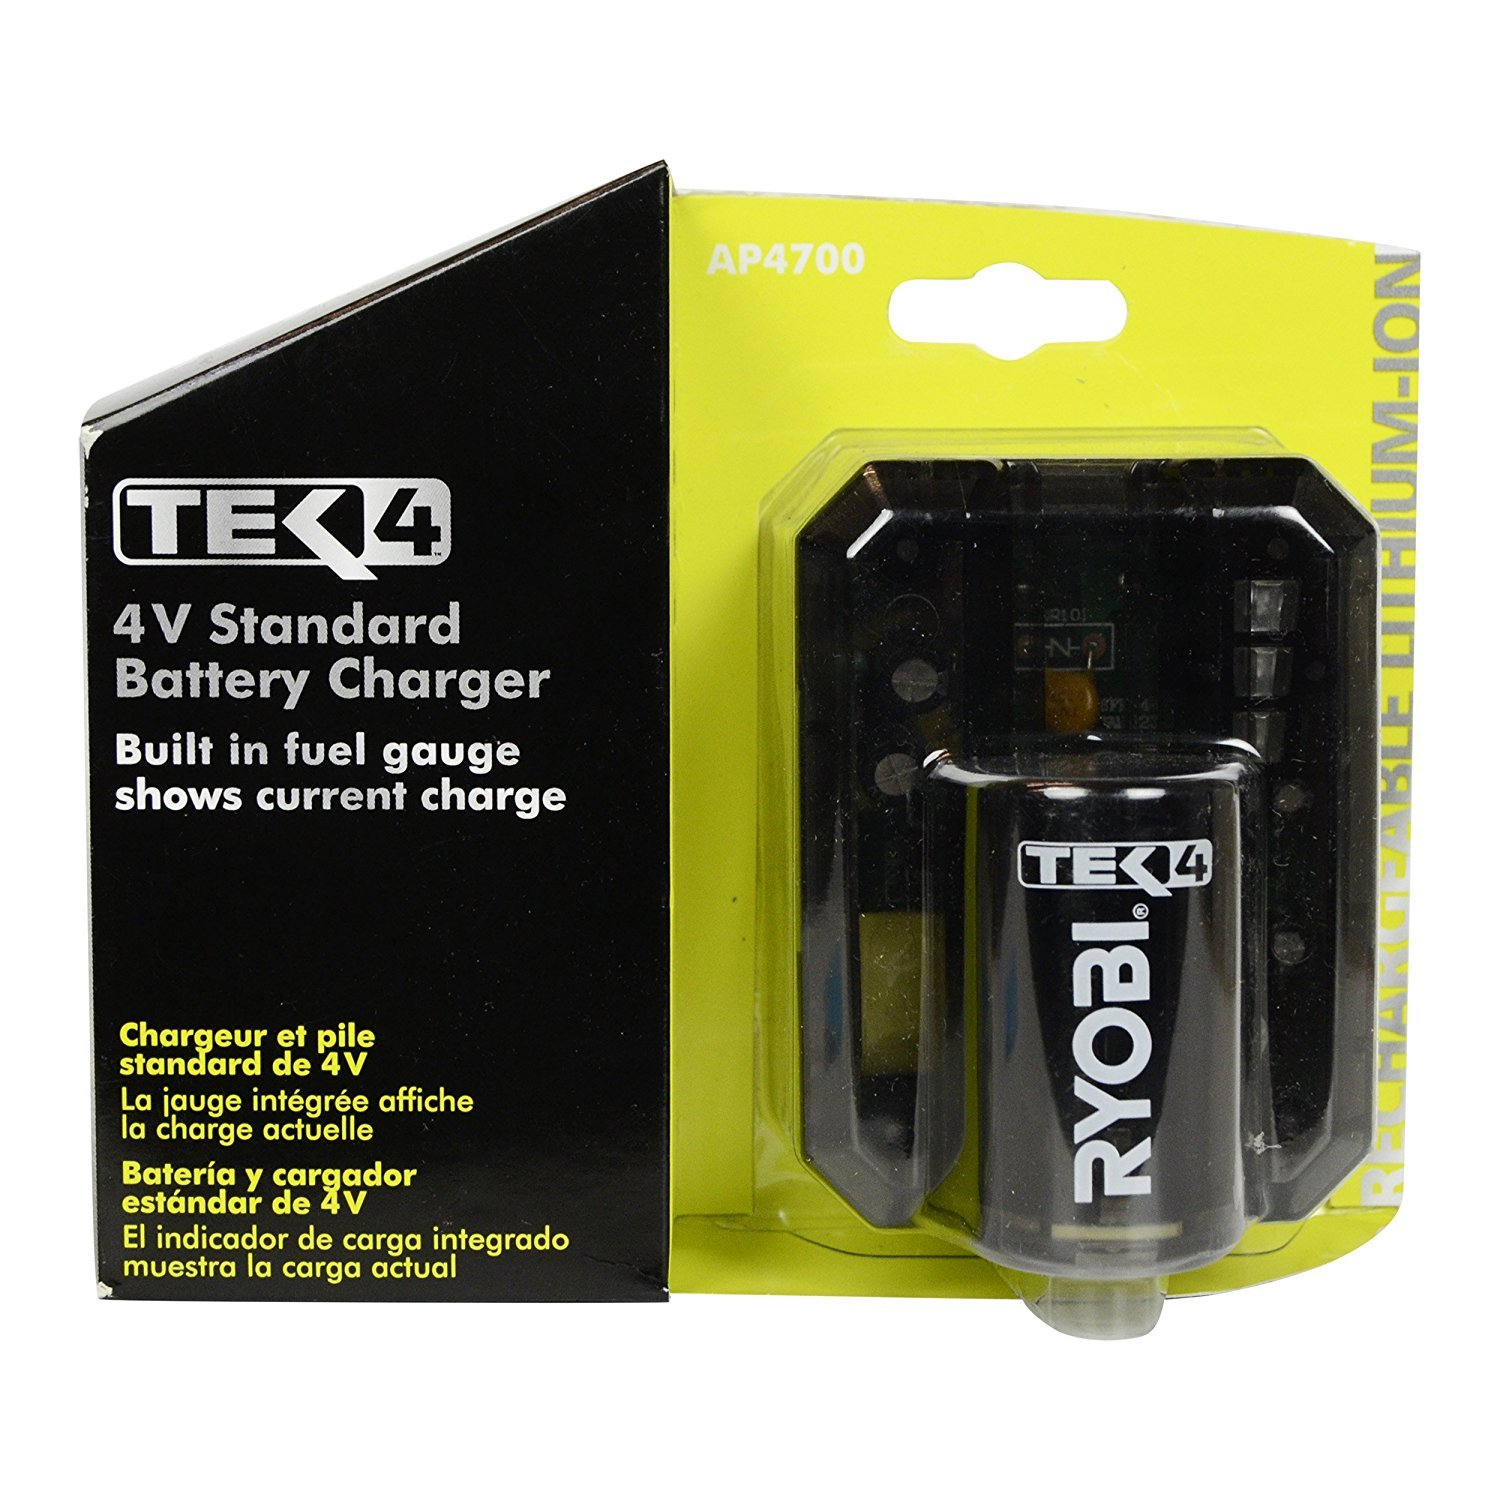 Amazon.com: Ryobi Tek4 4V Lithium-Ion Battery: Health & Personal Care